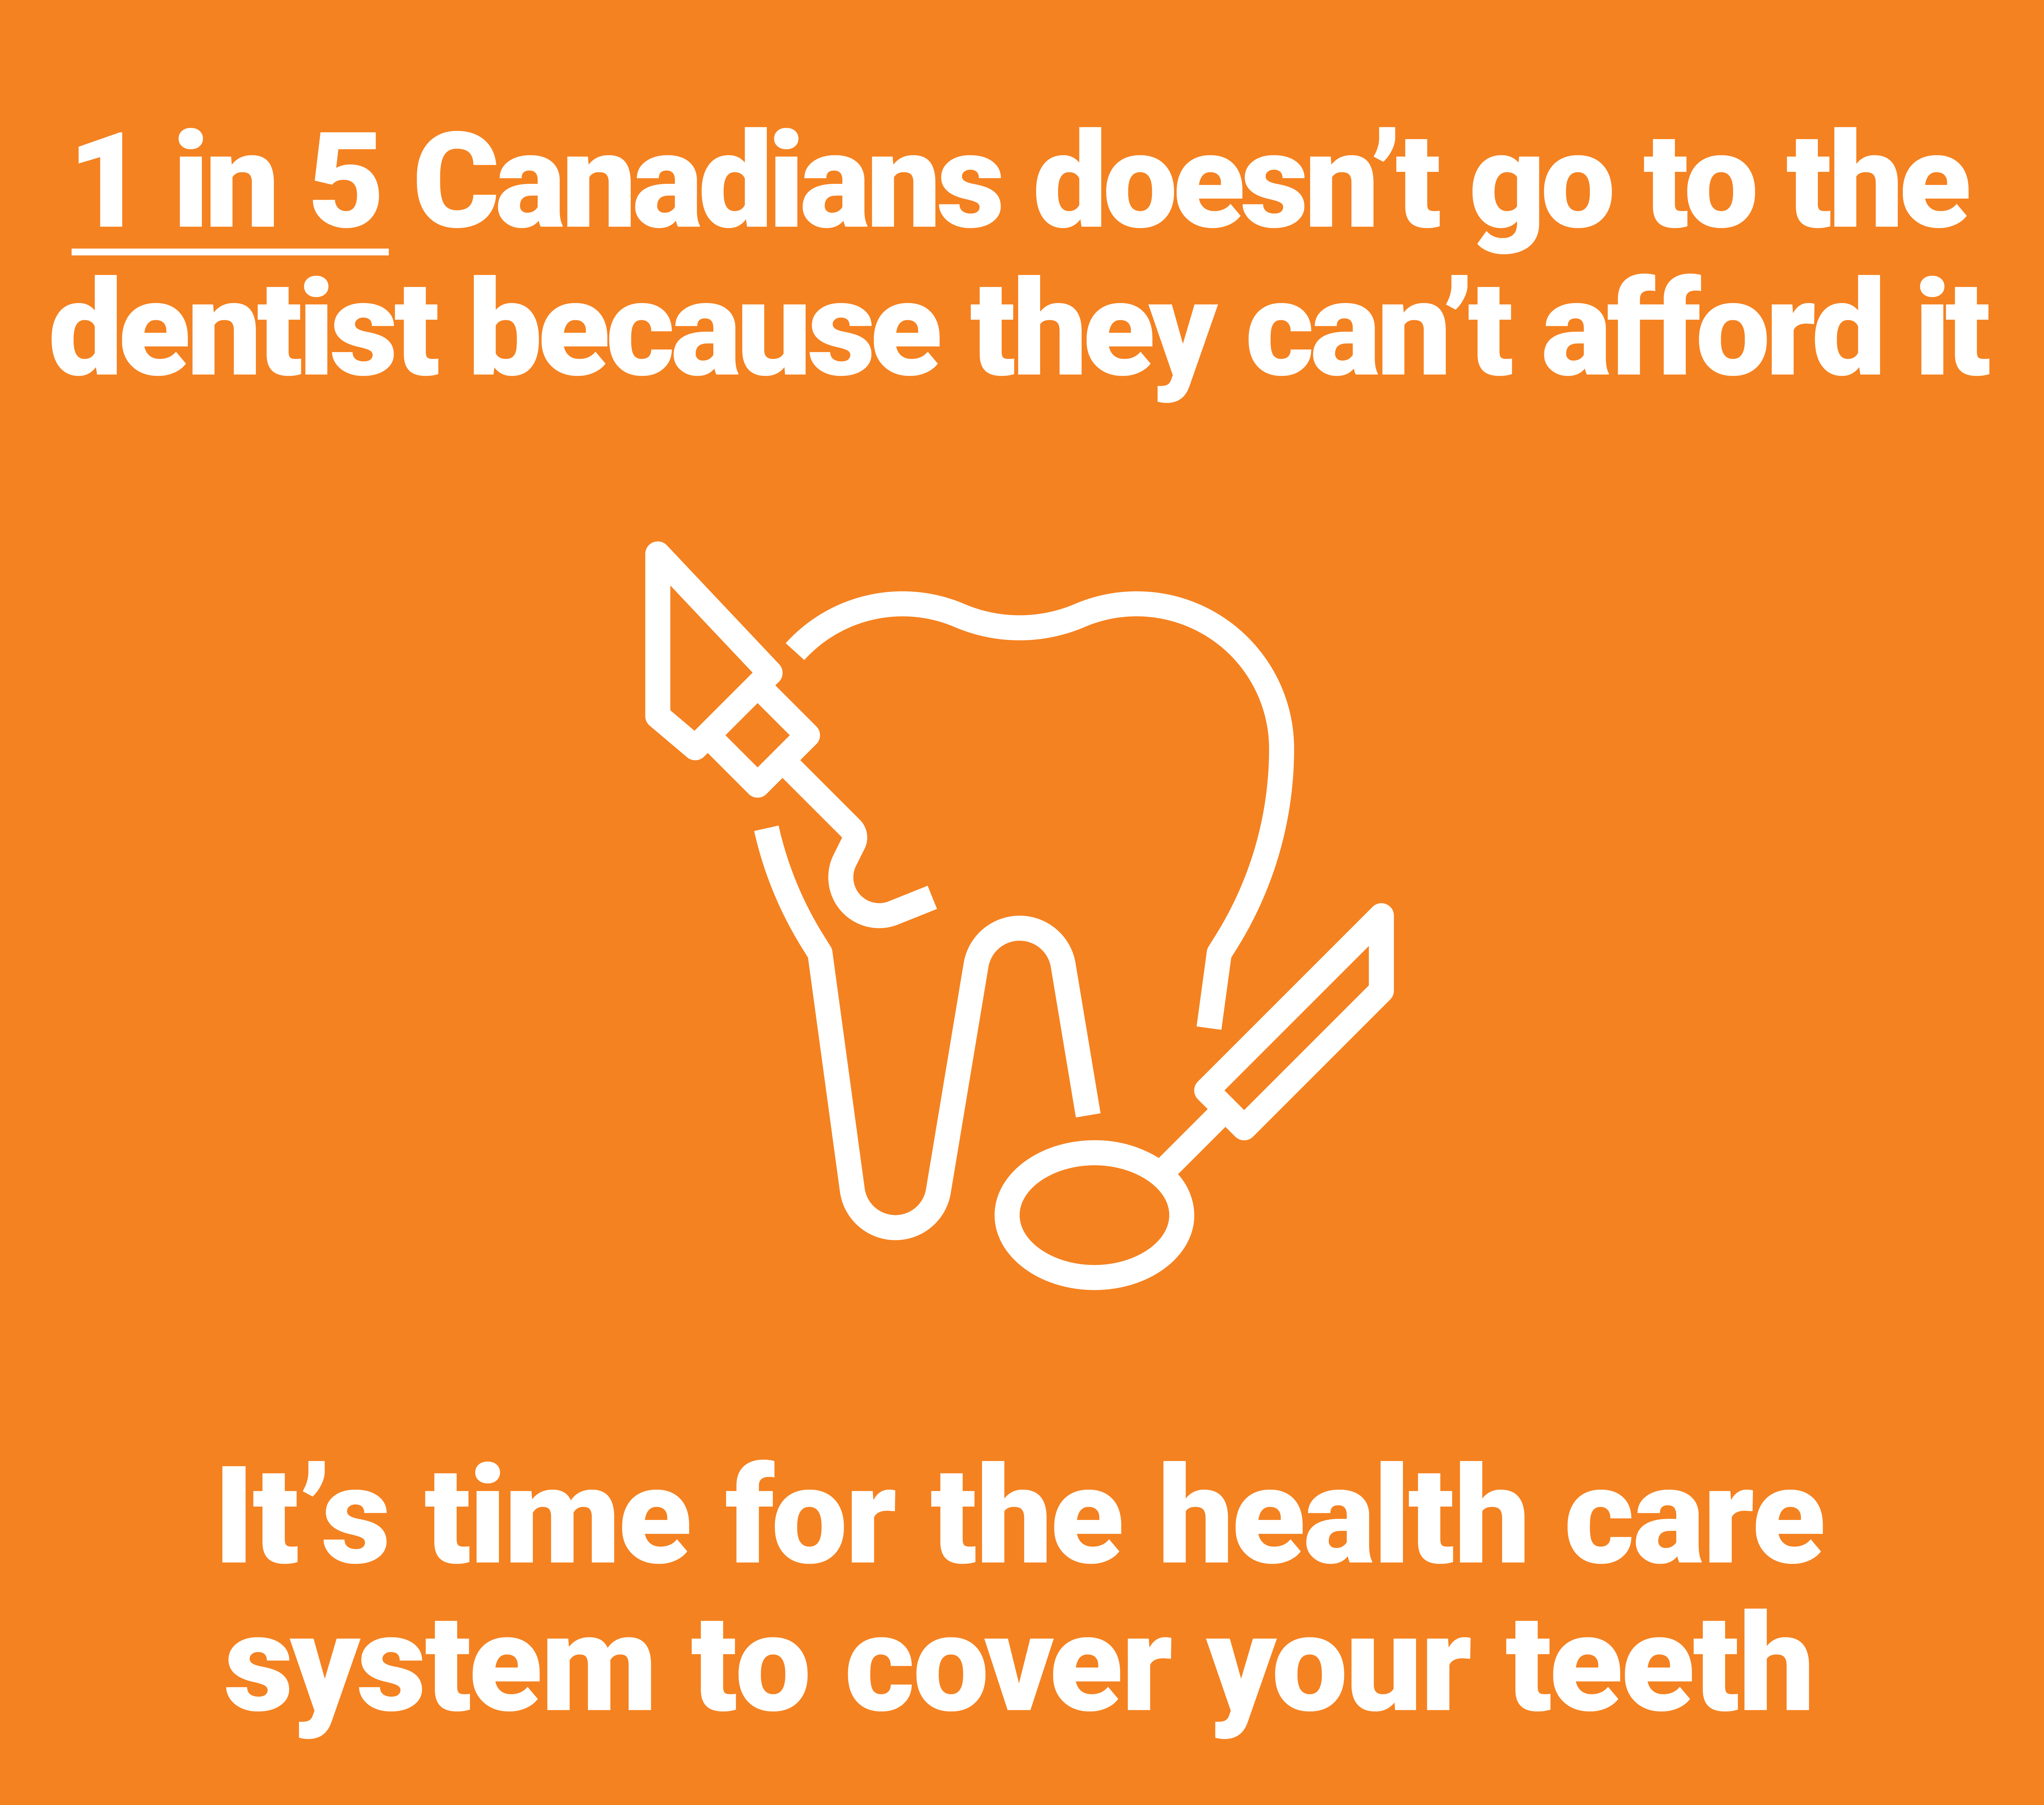 white tooth on orange back ground with words 1 in 5 Canadians cannot afford dental care